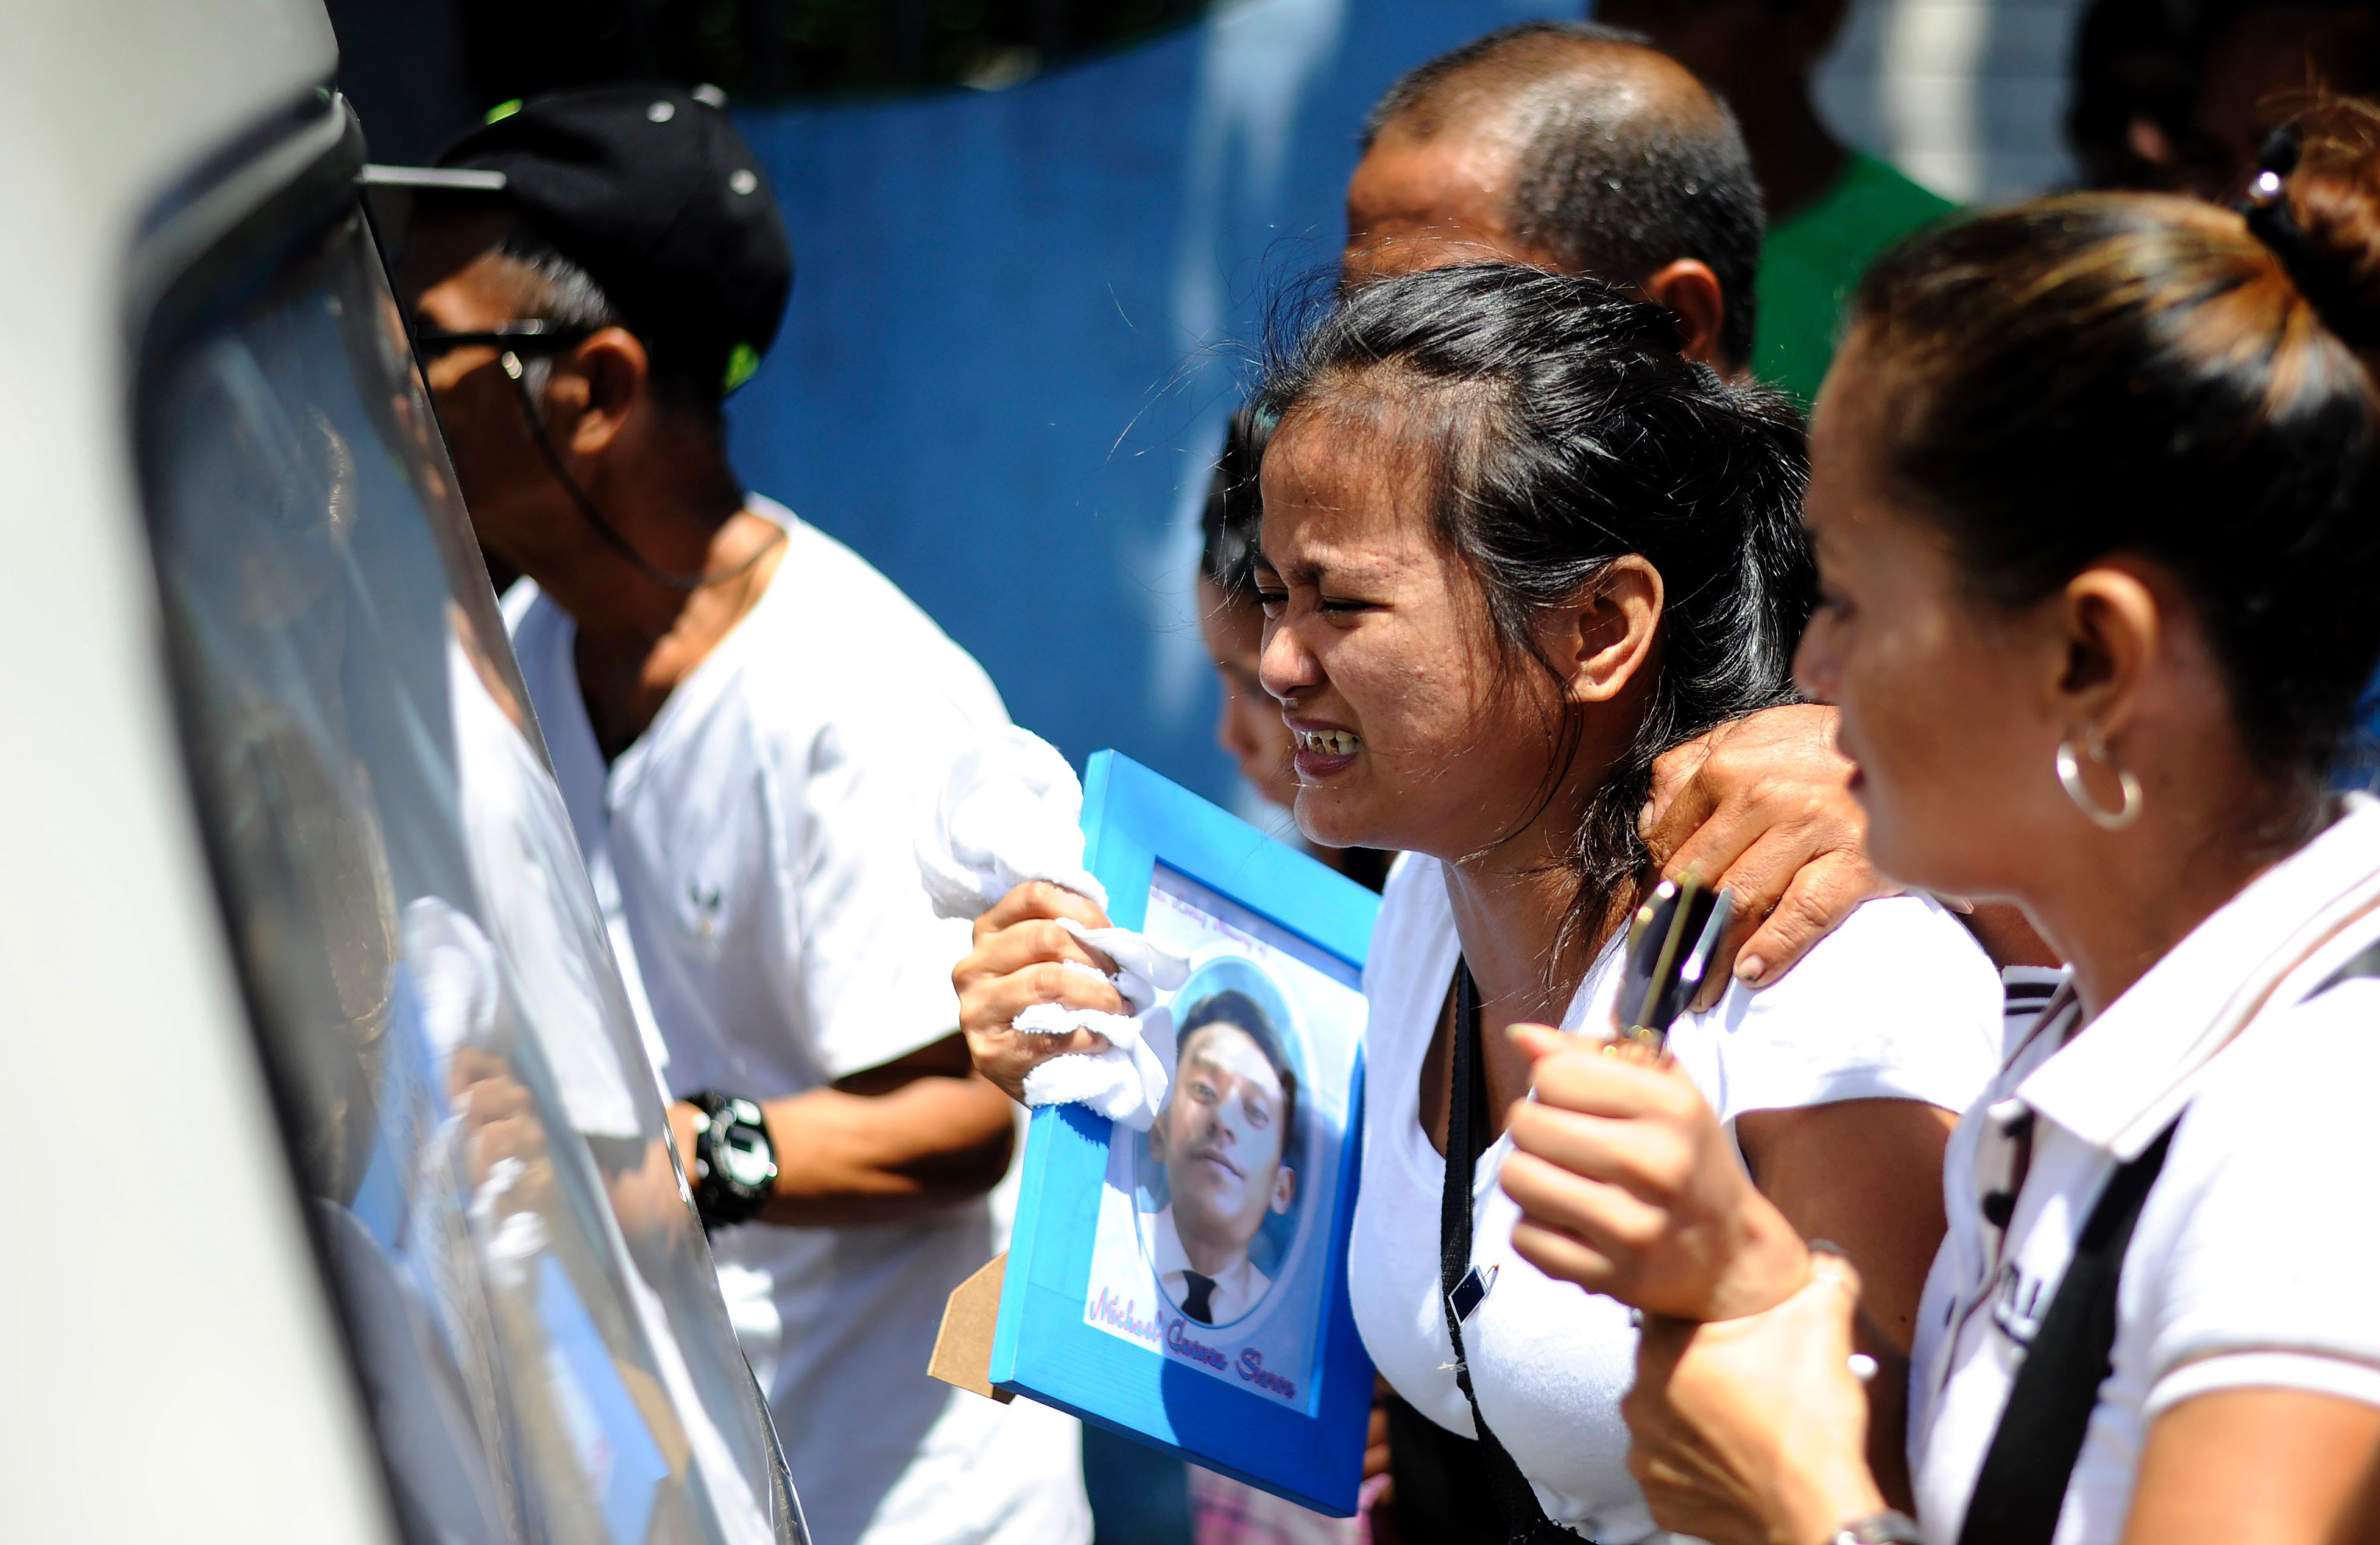 Jennilyn Olayres, center, cries as she follows the hearse carrying the coffin of her partner Michael Siaron during his burial at a cemetery in Manila on Aug. 3, 2016. Siaron was killed by suspected vigilantes on July 22 acting on President Rodrigo Duterte's call to kill all the country's alleged drug dealers